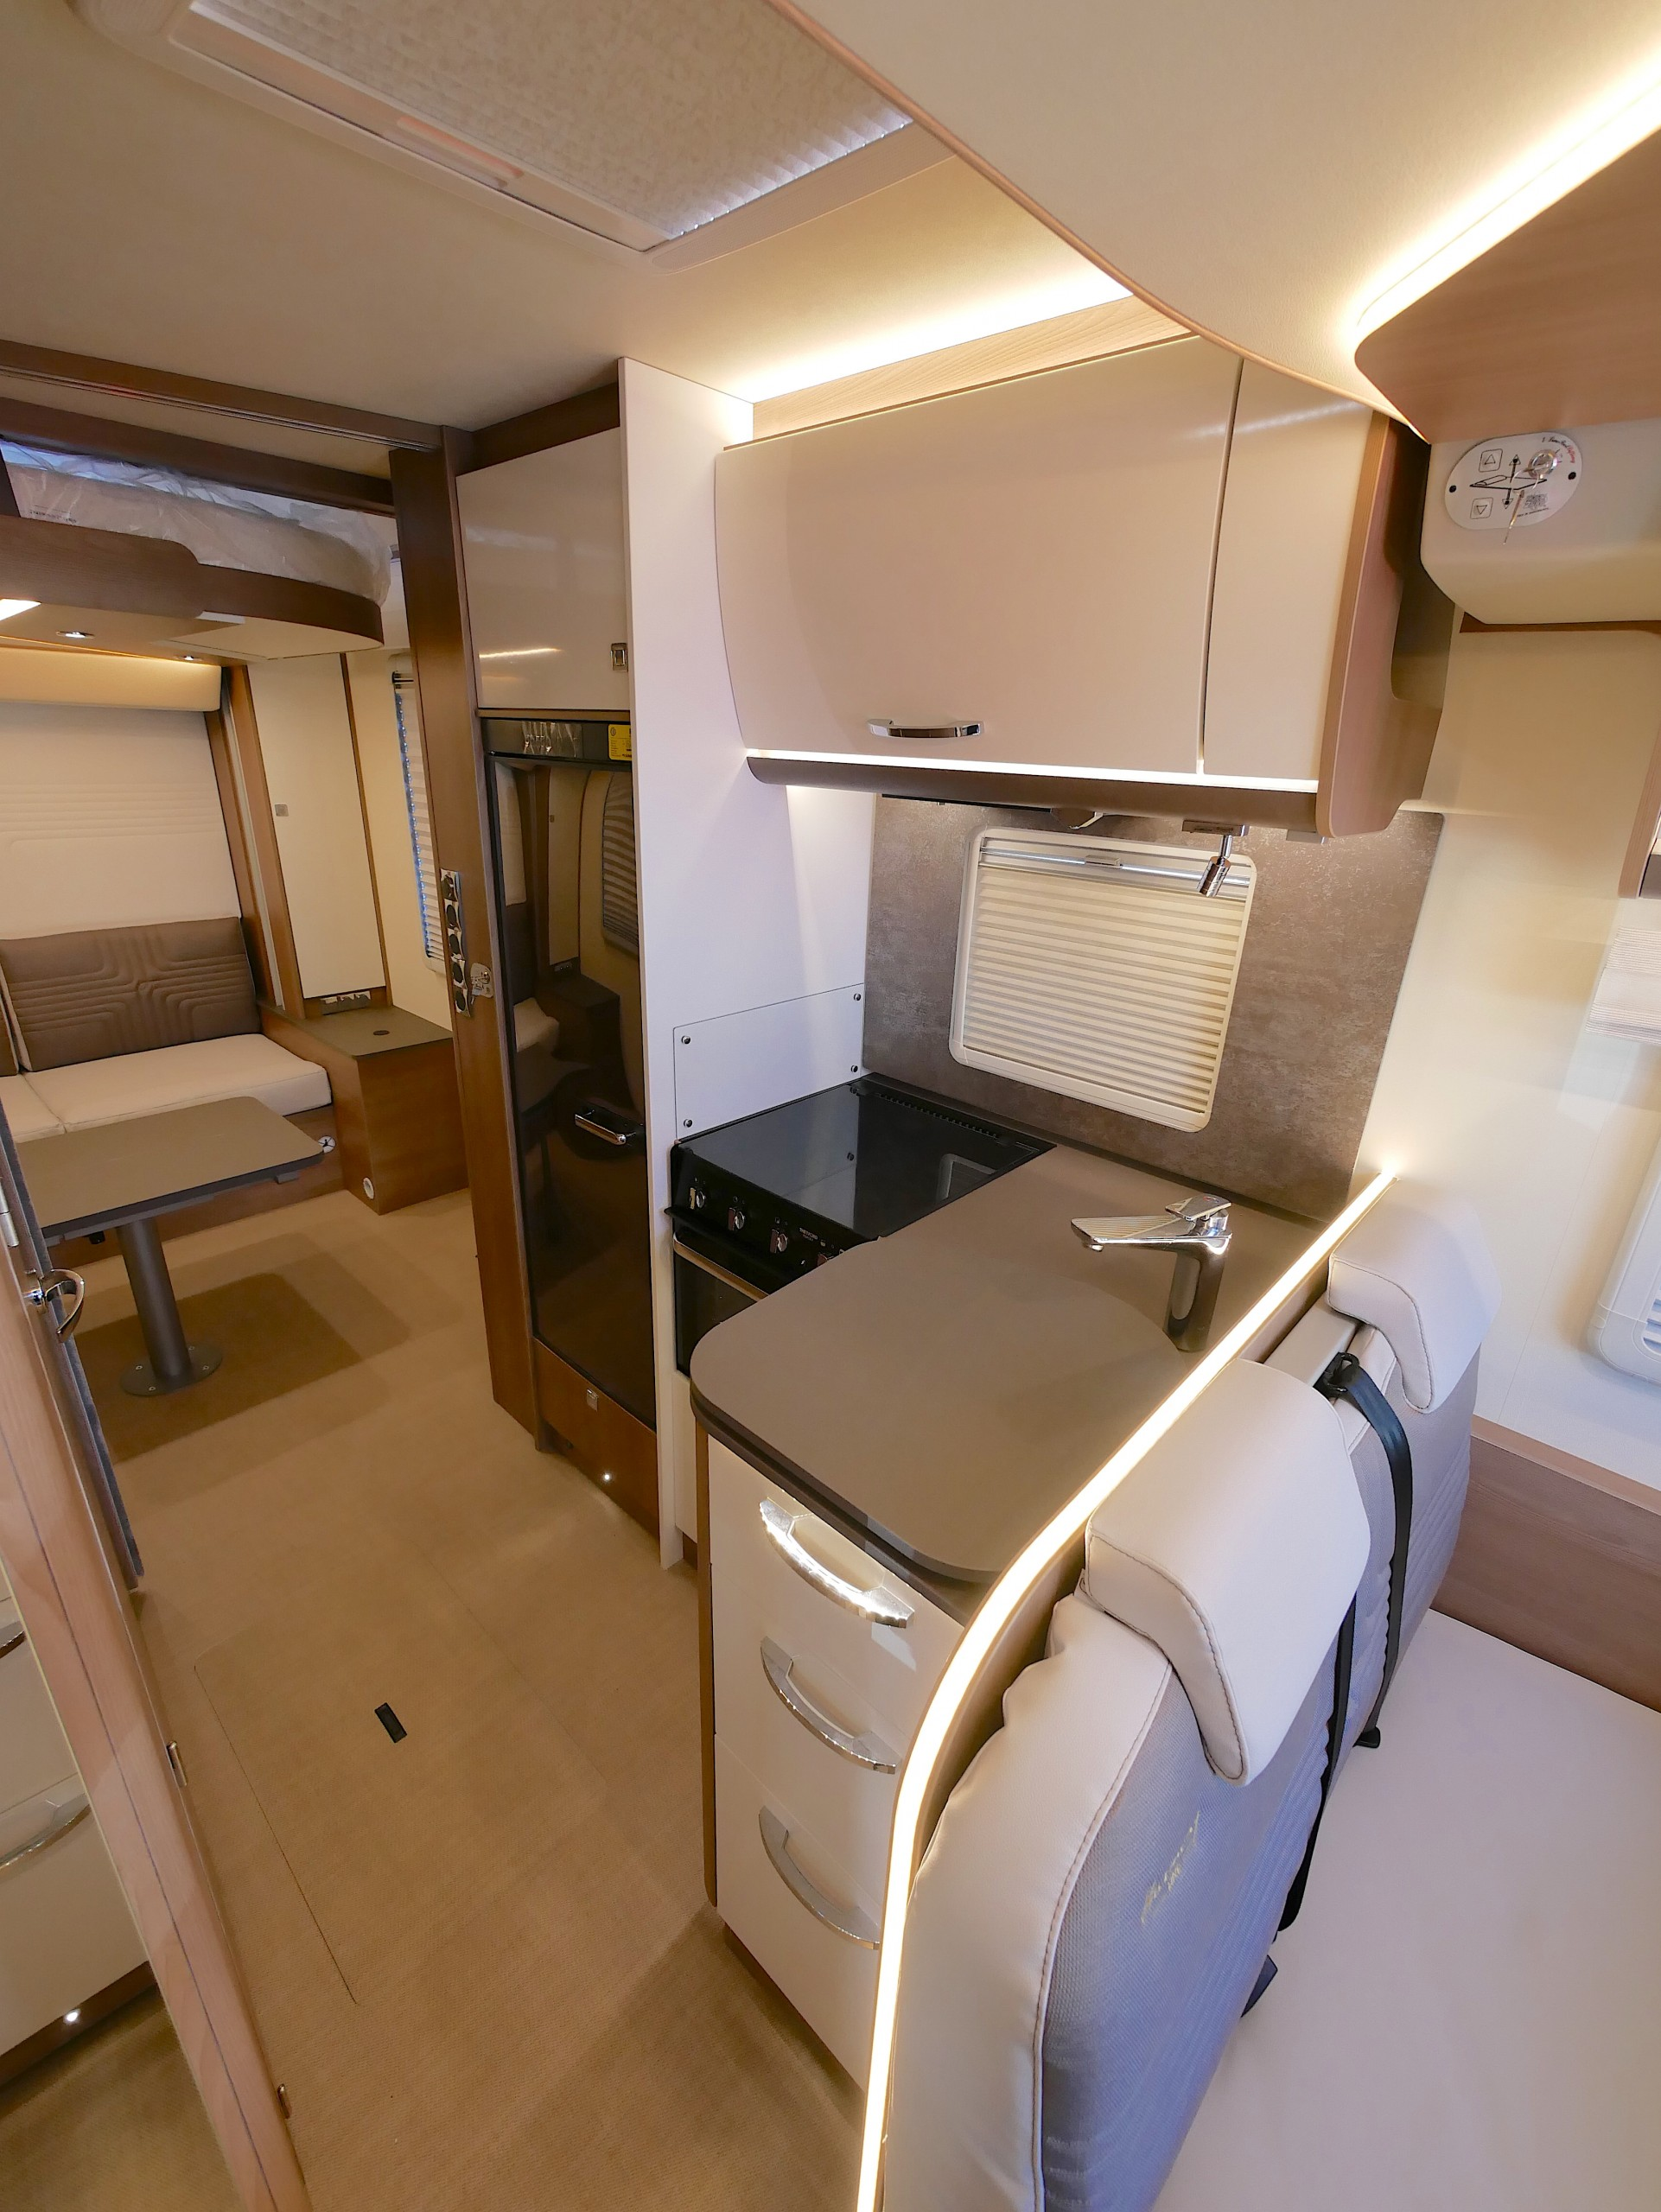 Compact L-shaped kitchen, overhead locker storage, LED strip lighting above and around cupboards and spotlights below